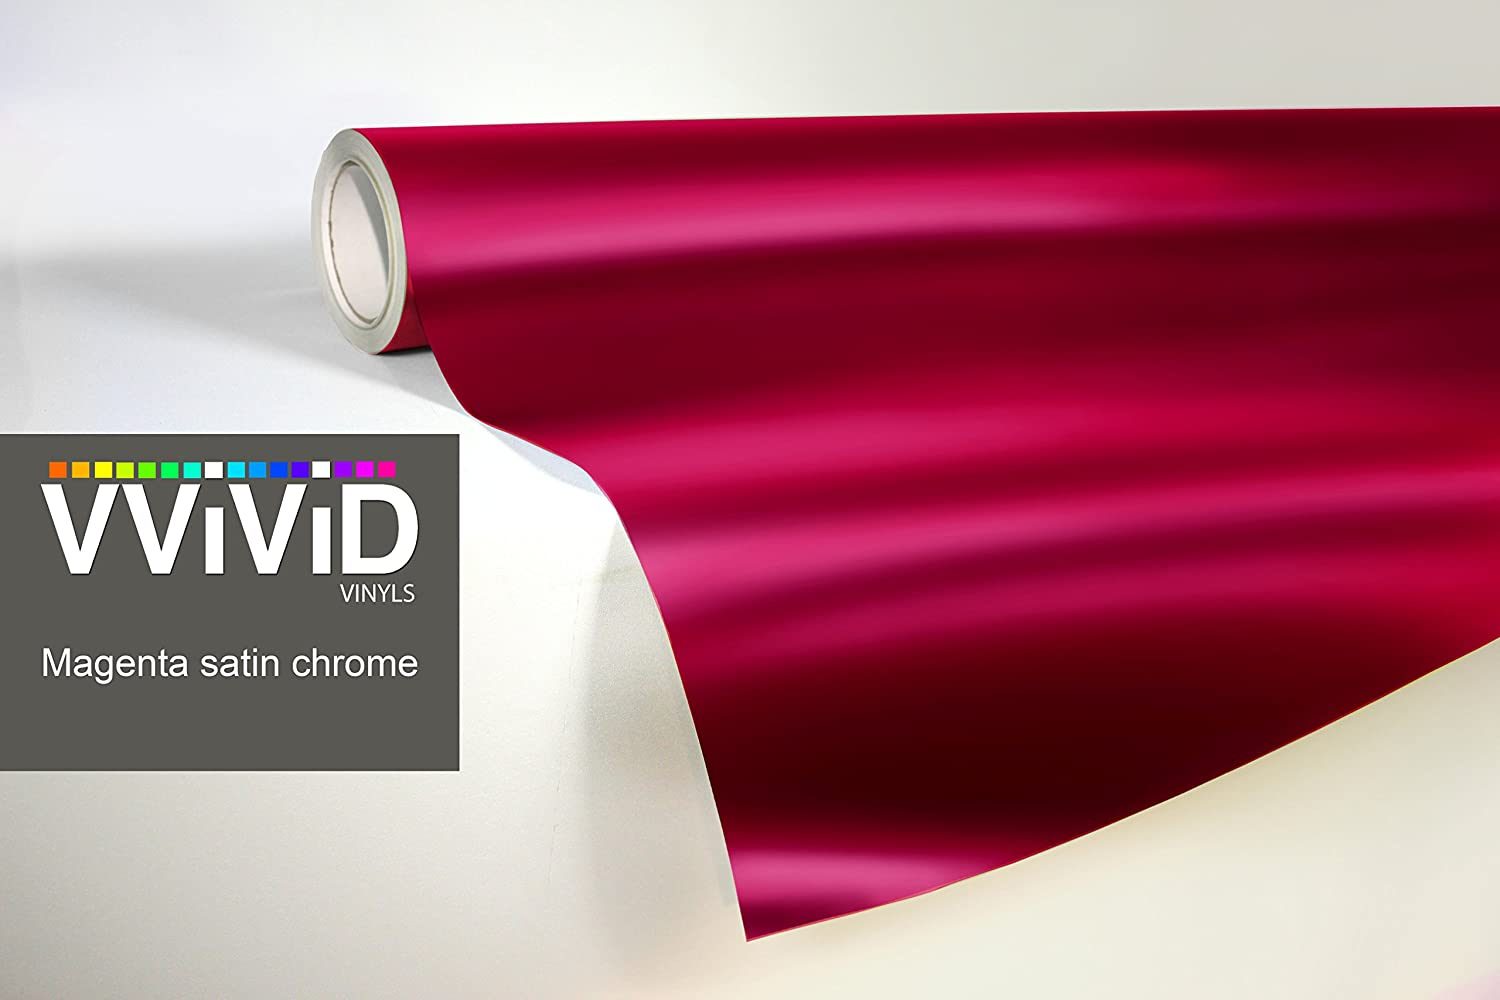 1ft x 5ft VViViD Pink Magenta Satin Chrome Metallic Finish Vinyl Wrap Film Roll Decal Sheet DIY Easy to Use Air-Release Adhesive